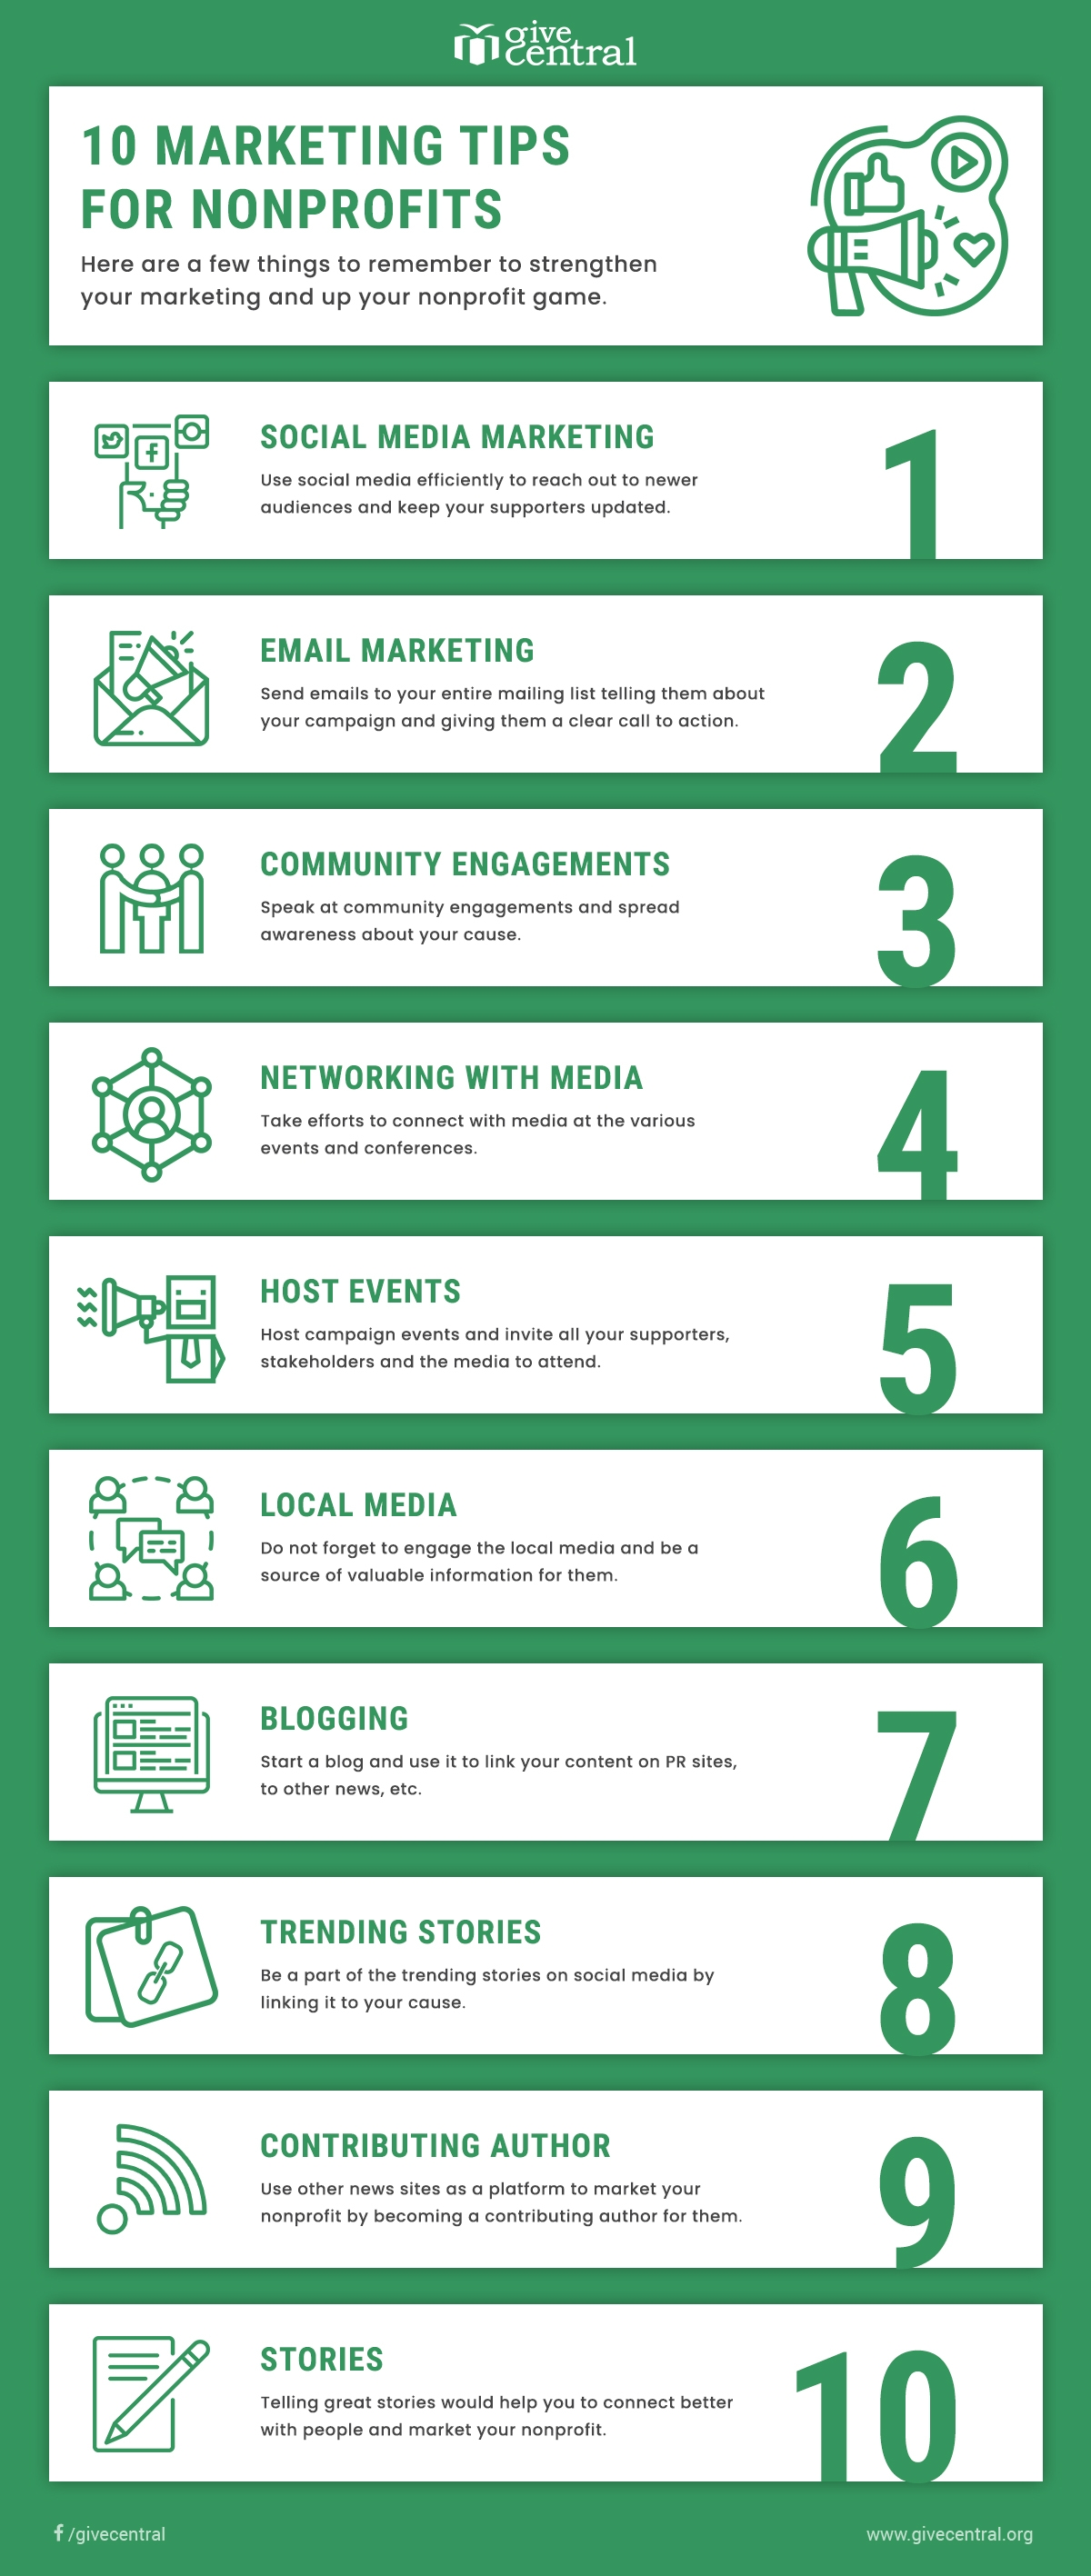 marketing tips for nonprofits